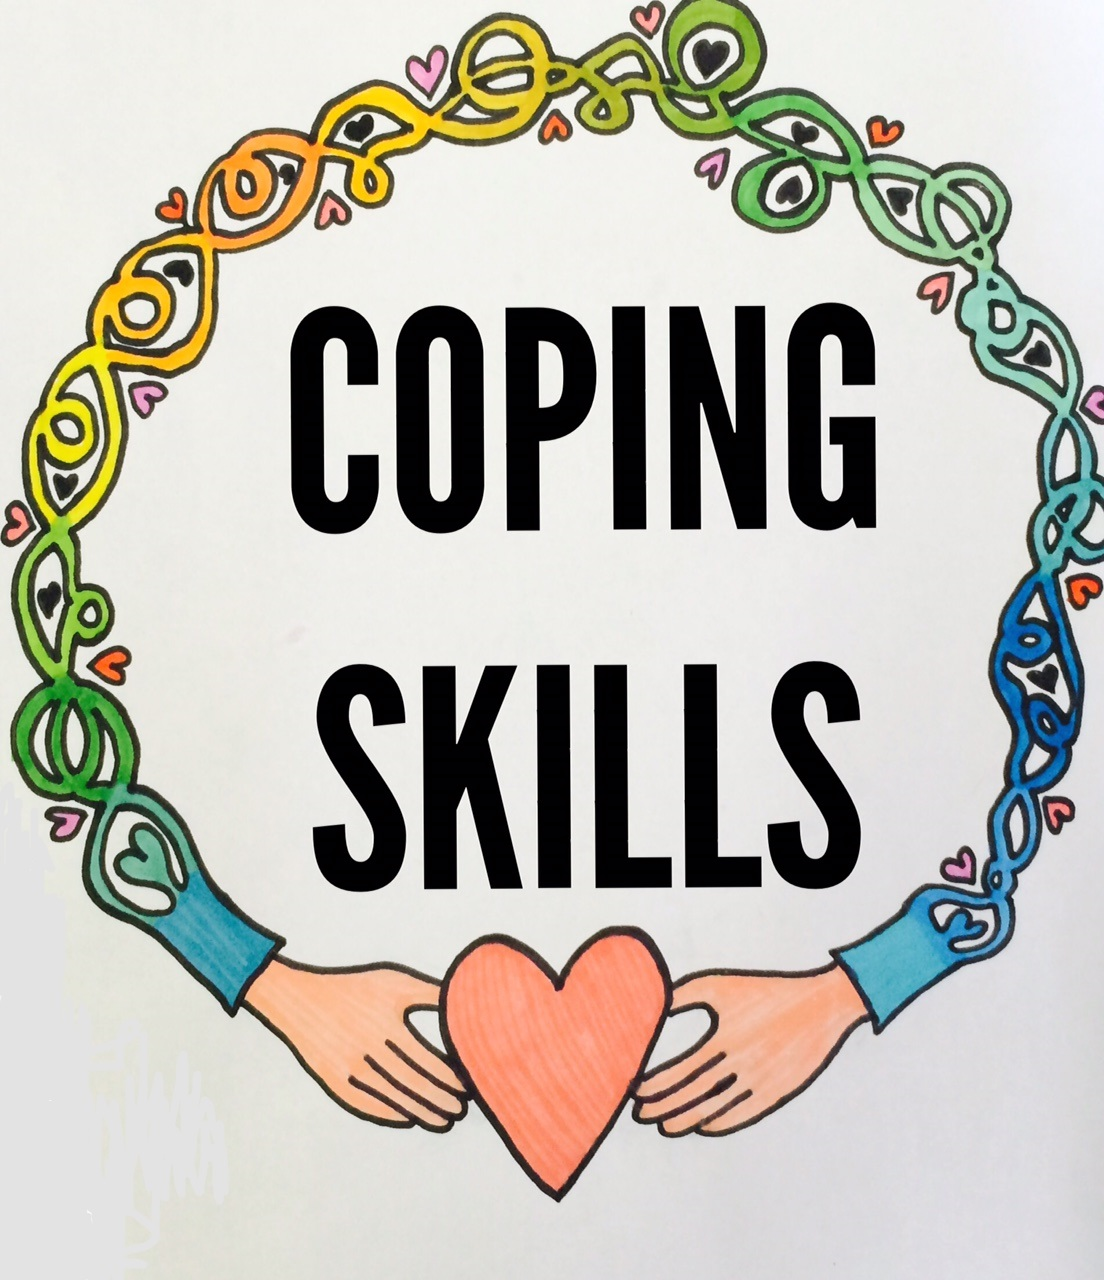 a review of coping skills for Teens - out-of-the-box coping skills - facilitator reproducible activities for groups and individuals (transitional life skills for teens series) jan 1, 2015 by carol butler and ester ra leutenberg.